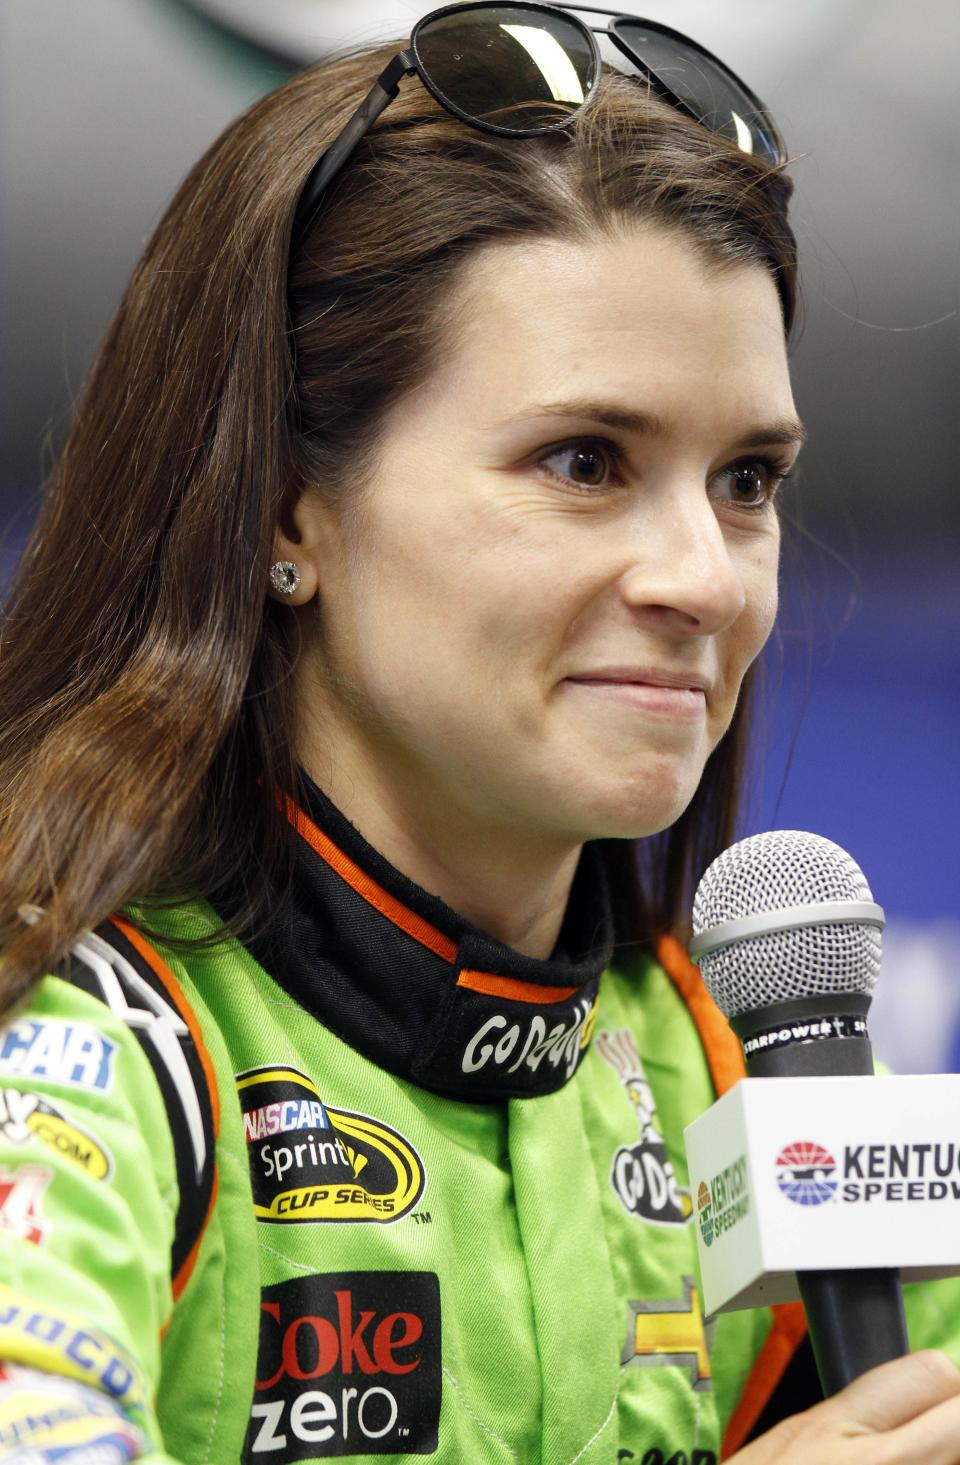 Danica Patrick answers a question during a news conference for the NASCAR Sprint Cup auto race at Kentucky Speedway in Sparta, Ky., Friday, June 28, 2013. (AP Photo/James Crisp)